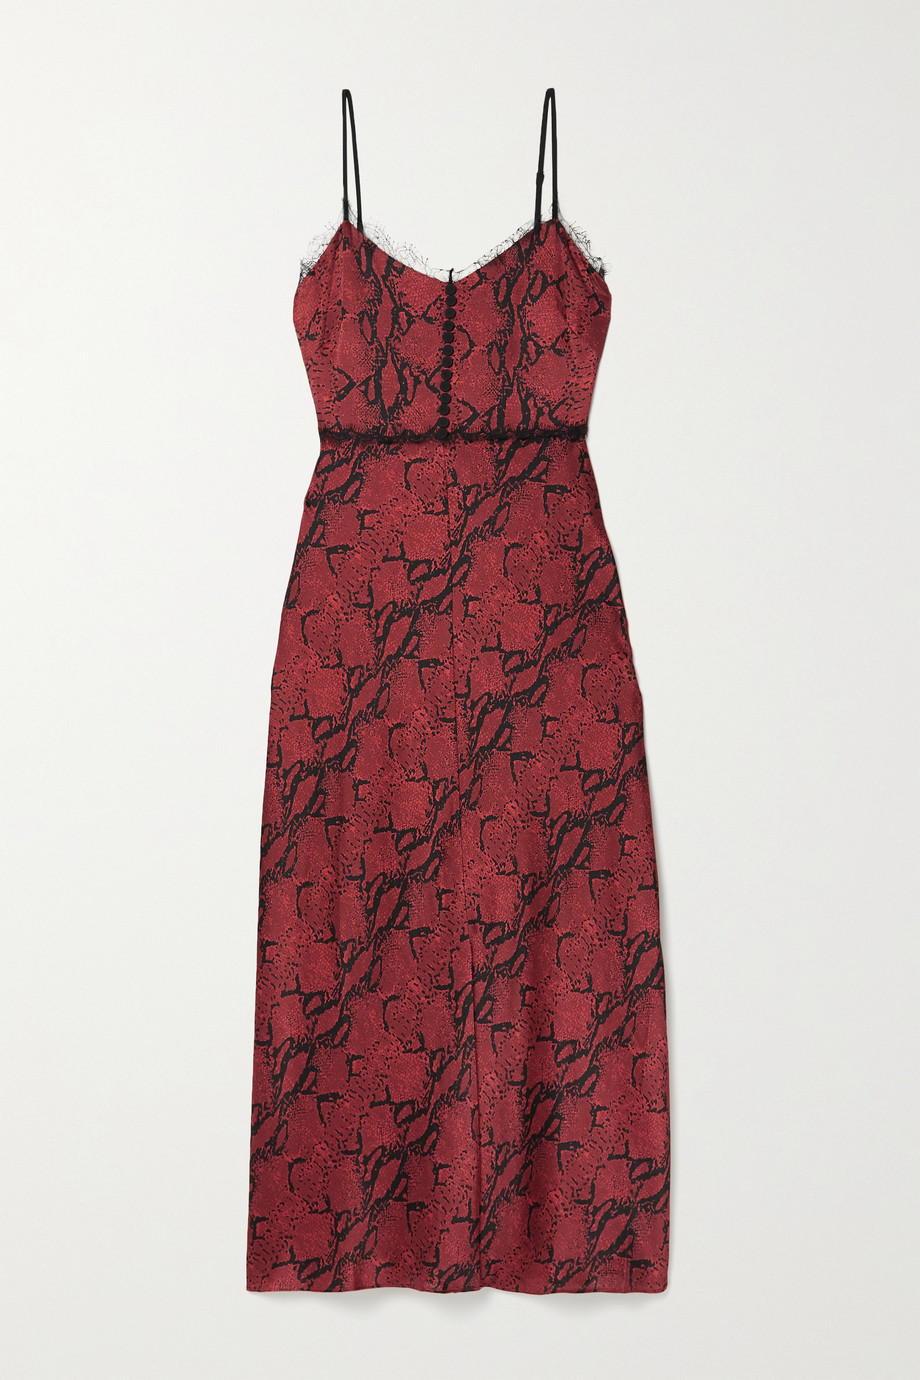 Jason Wu Lace-trimmed snake-print silk-crepe midi dress